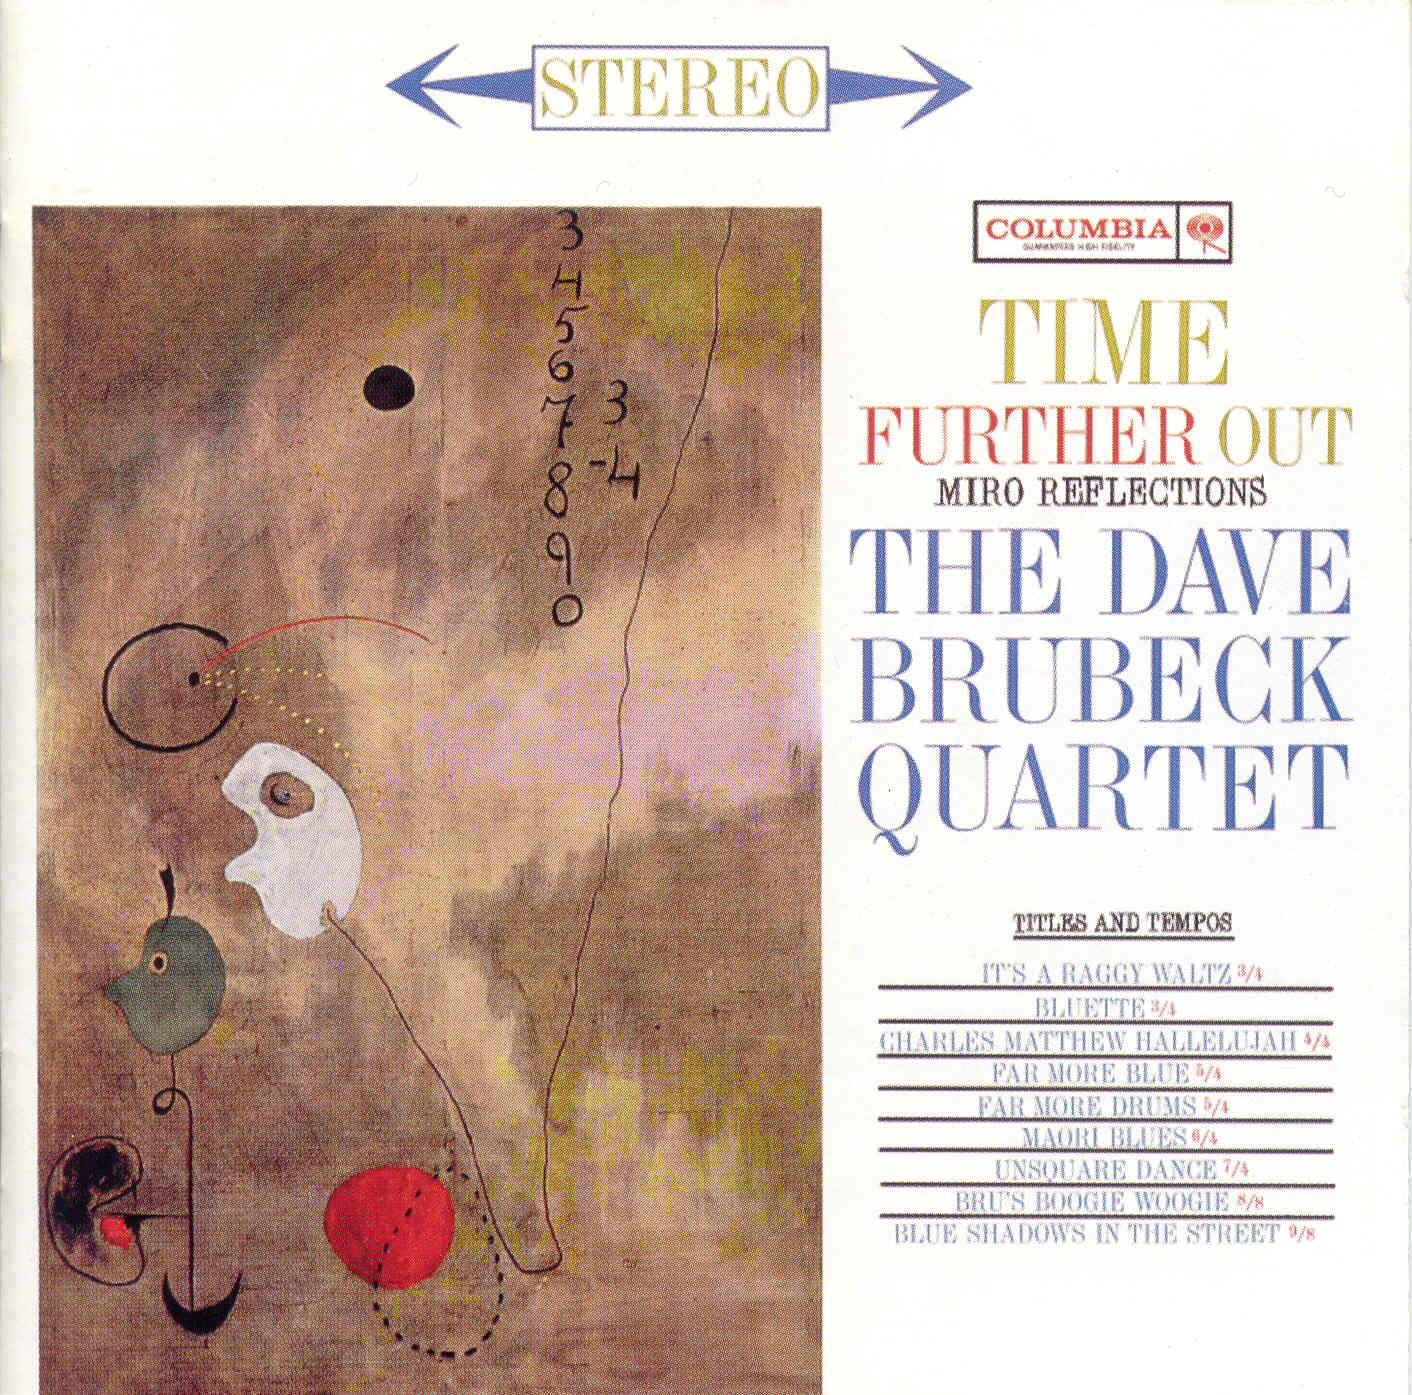 Виниловая пластинка Pro-ject Dave Brubeck - Time further